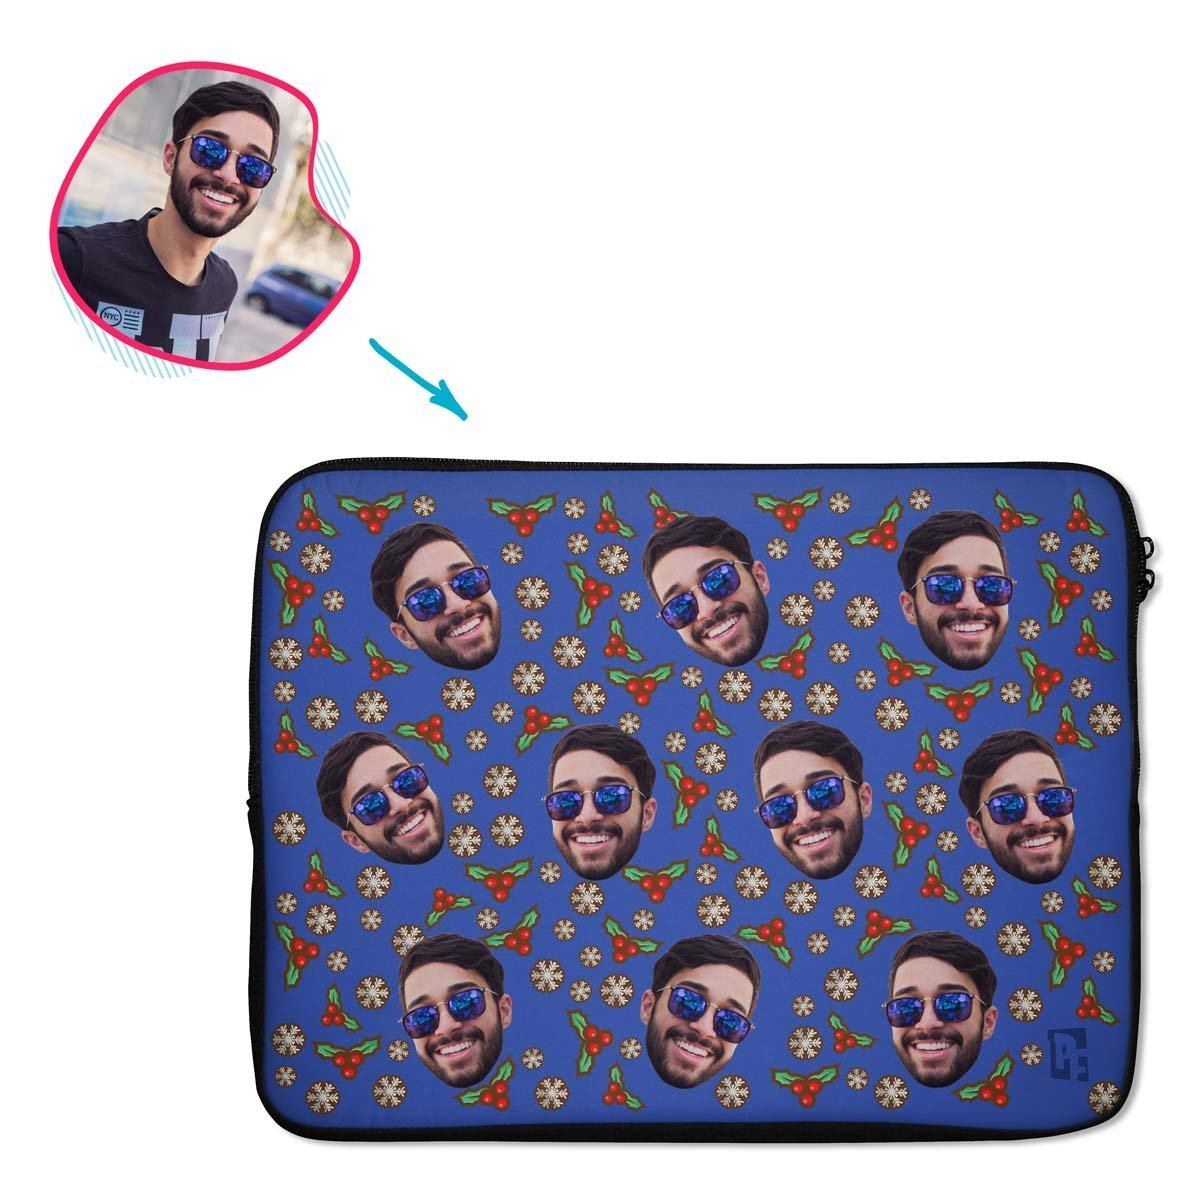 darkblue Mistletoe laptop sleeve personalized with photo of face printed on them